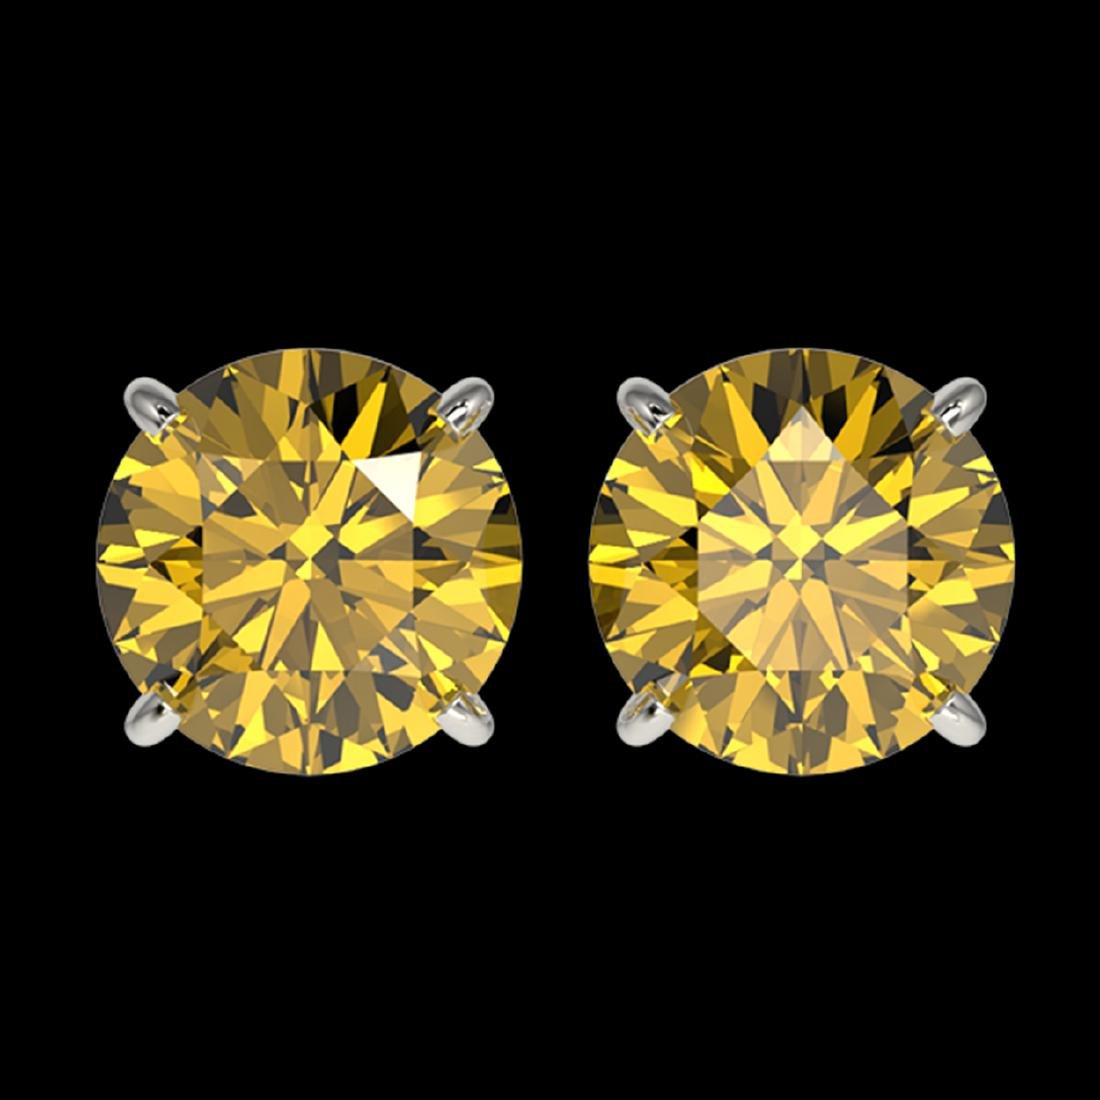 2.57 ctw Intense Yellow Diamond Stud Earrings 10K White